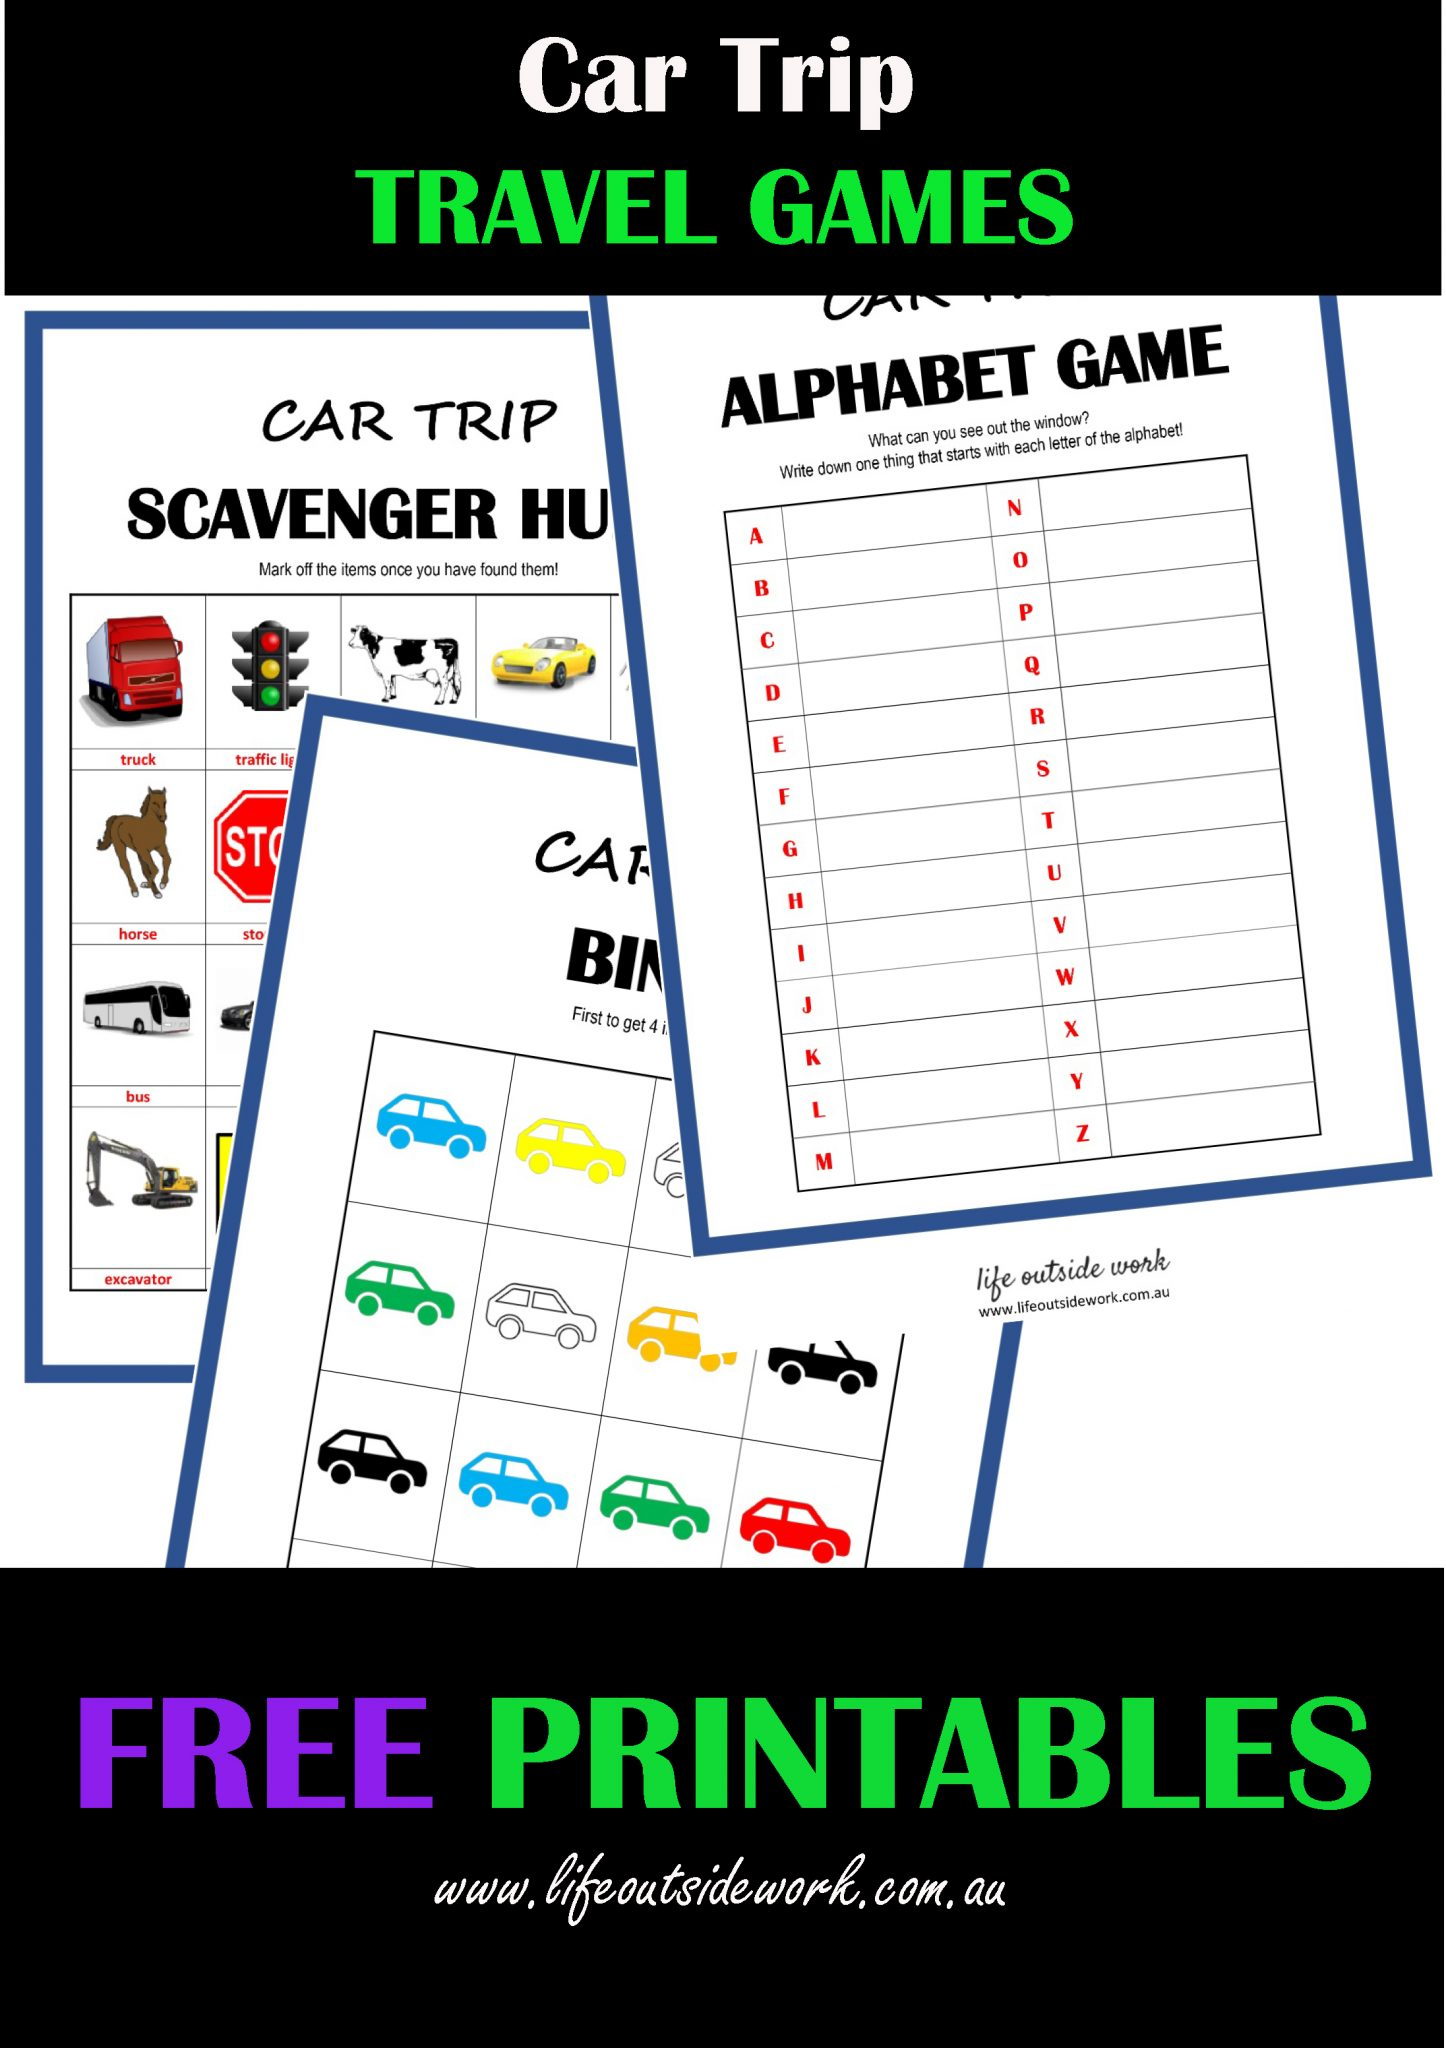 Car Travel Games Free Printables